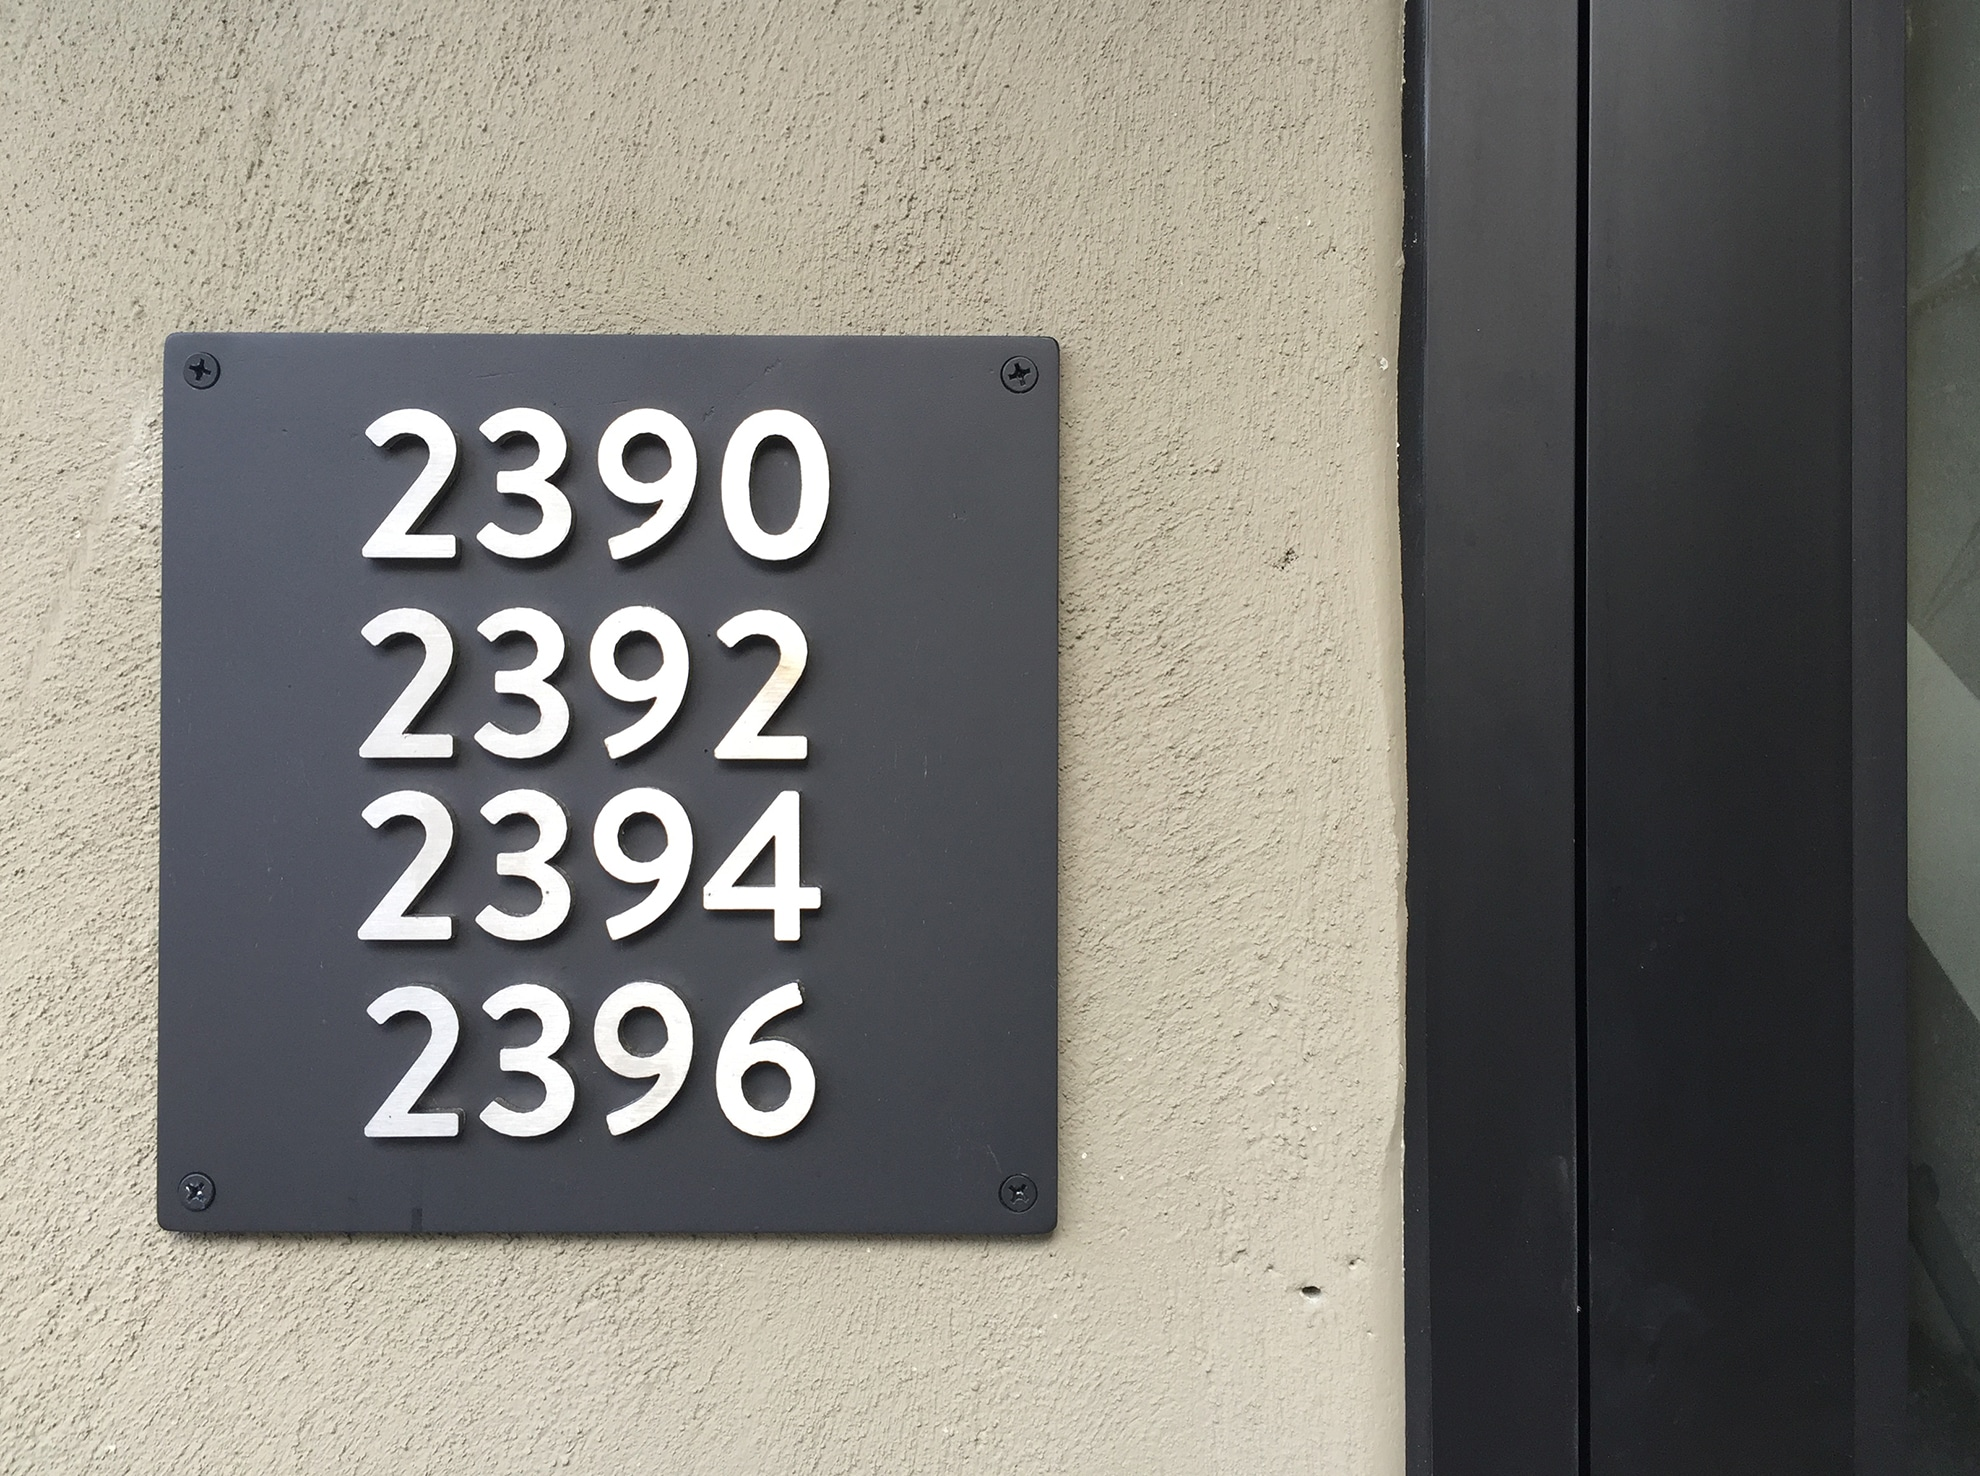 Metal signage with various apartment numbers